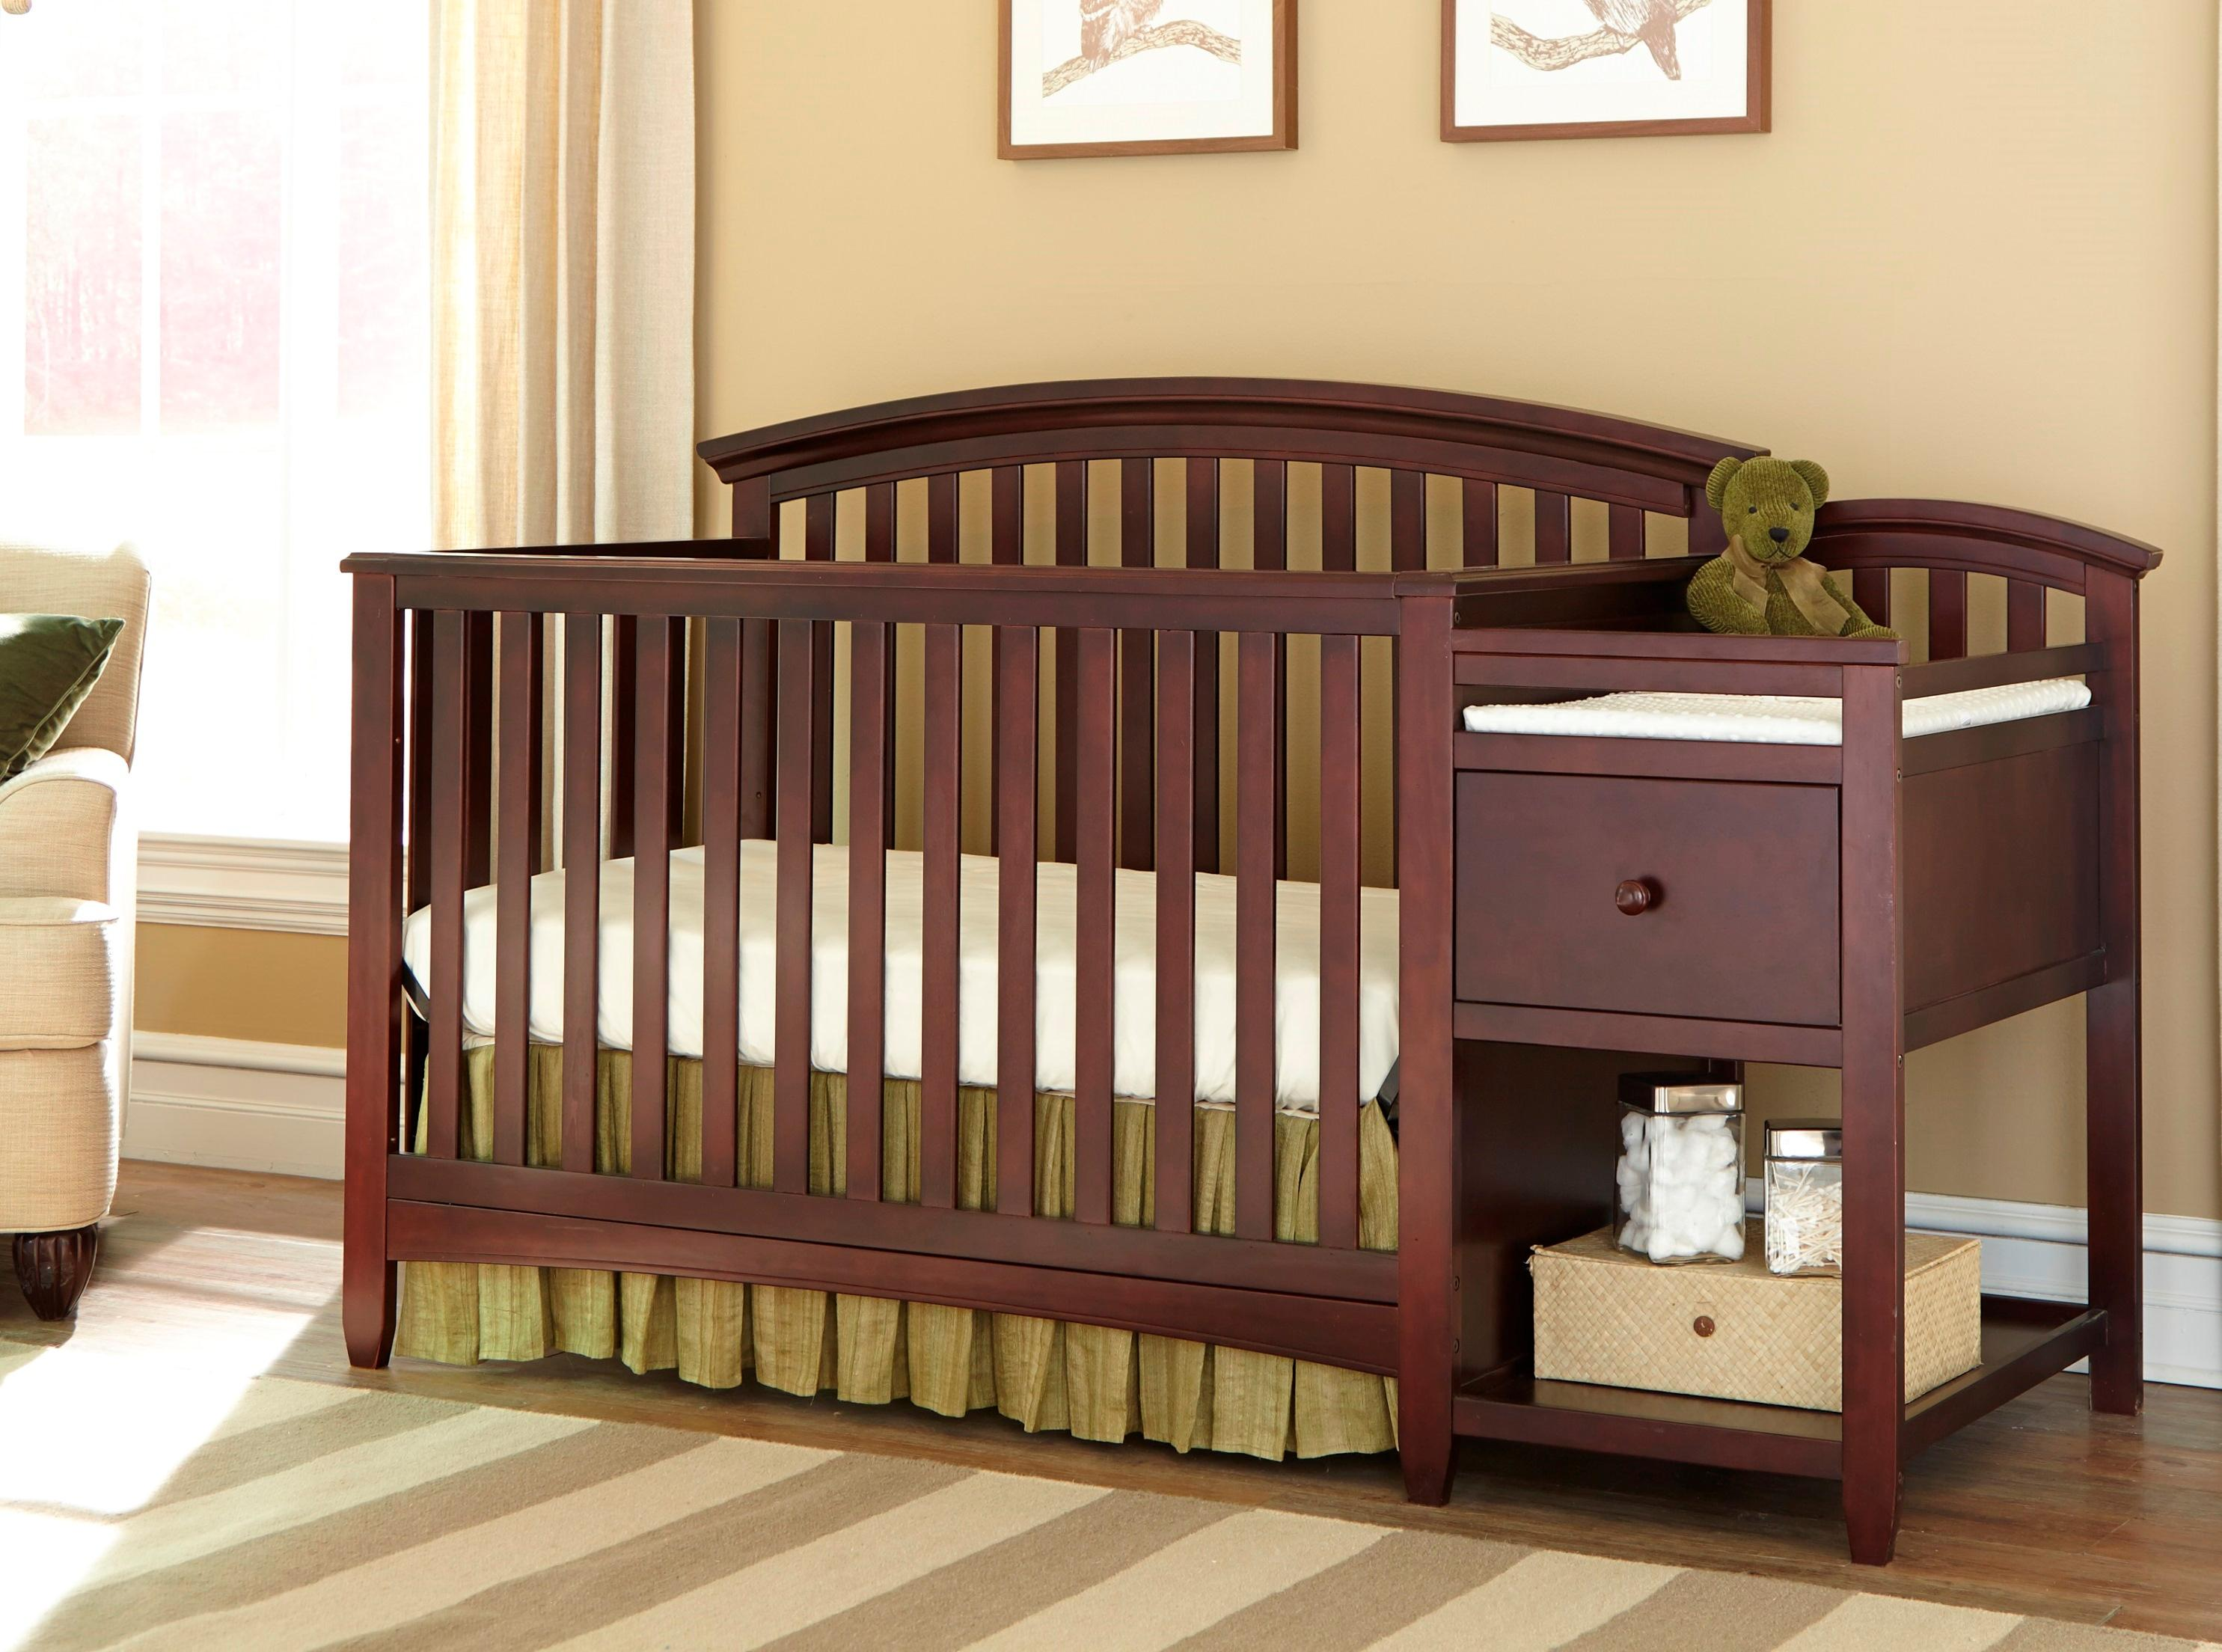 baby evolur crib turns reviews into pdx wayfair parker convertible bed in kids